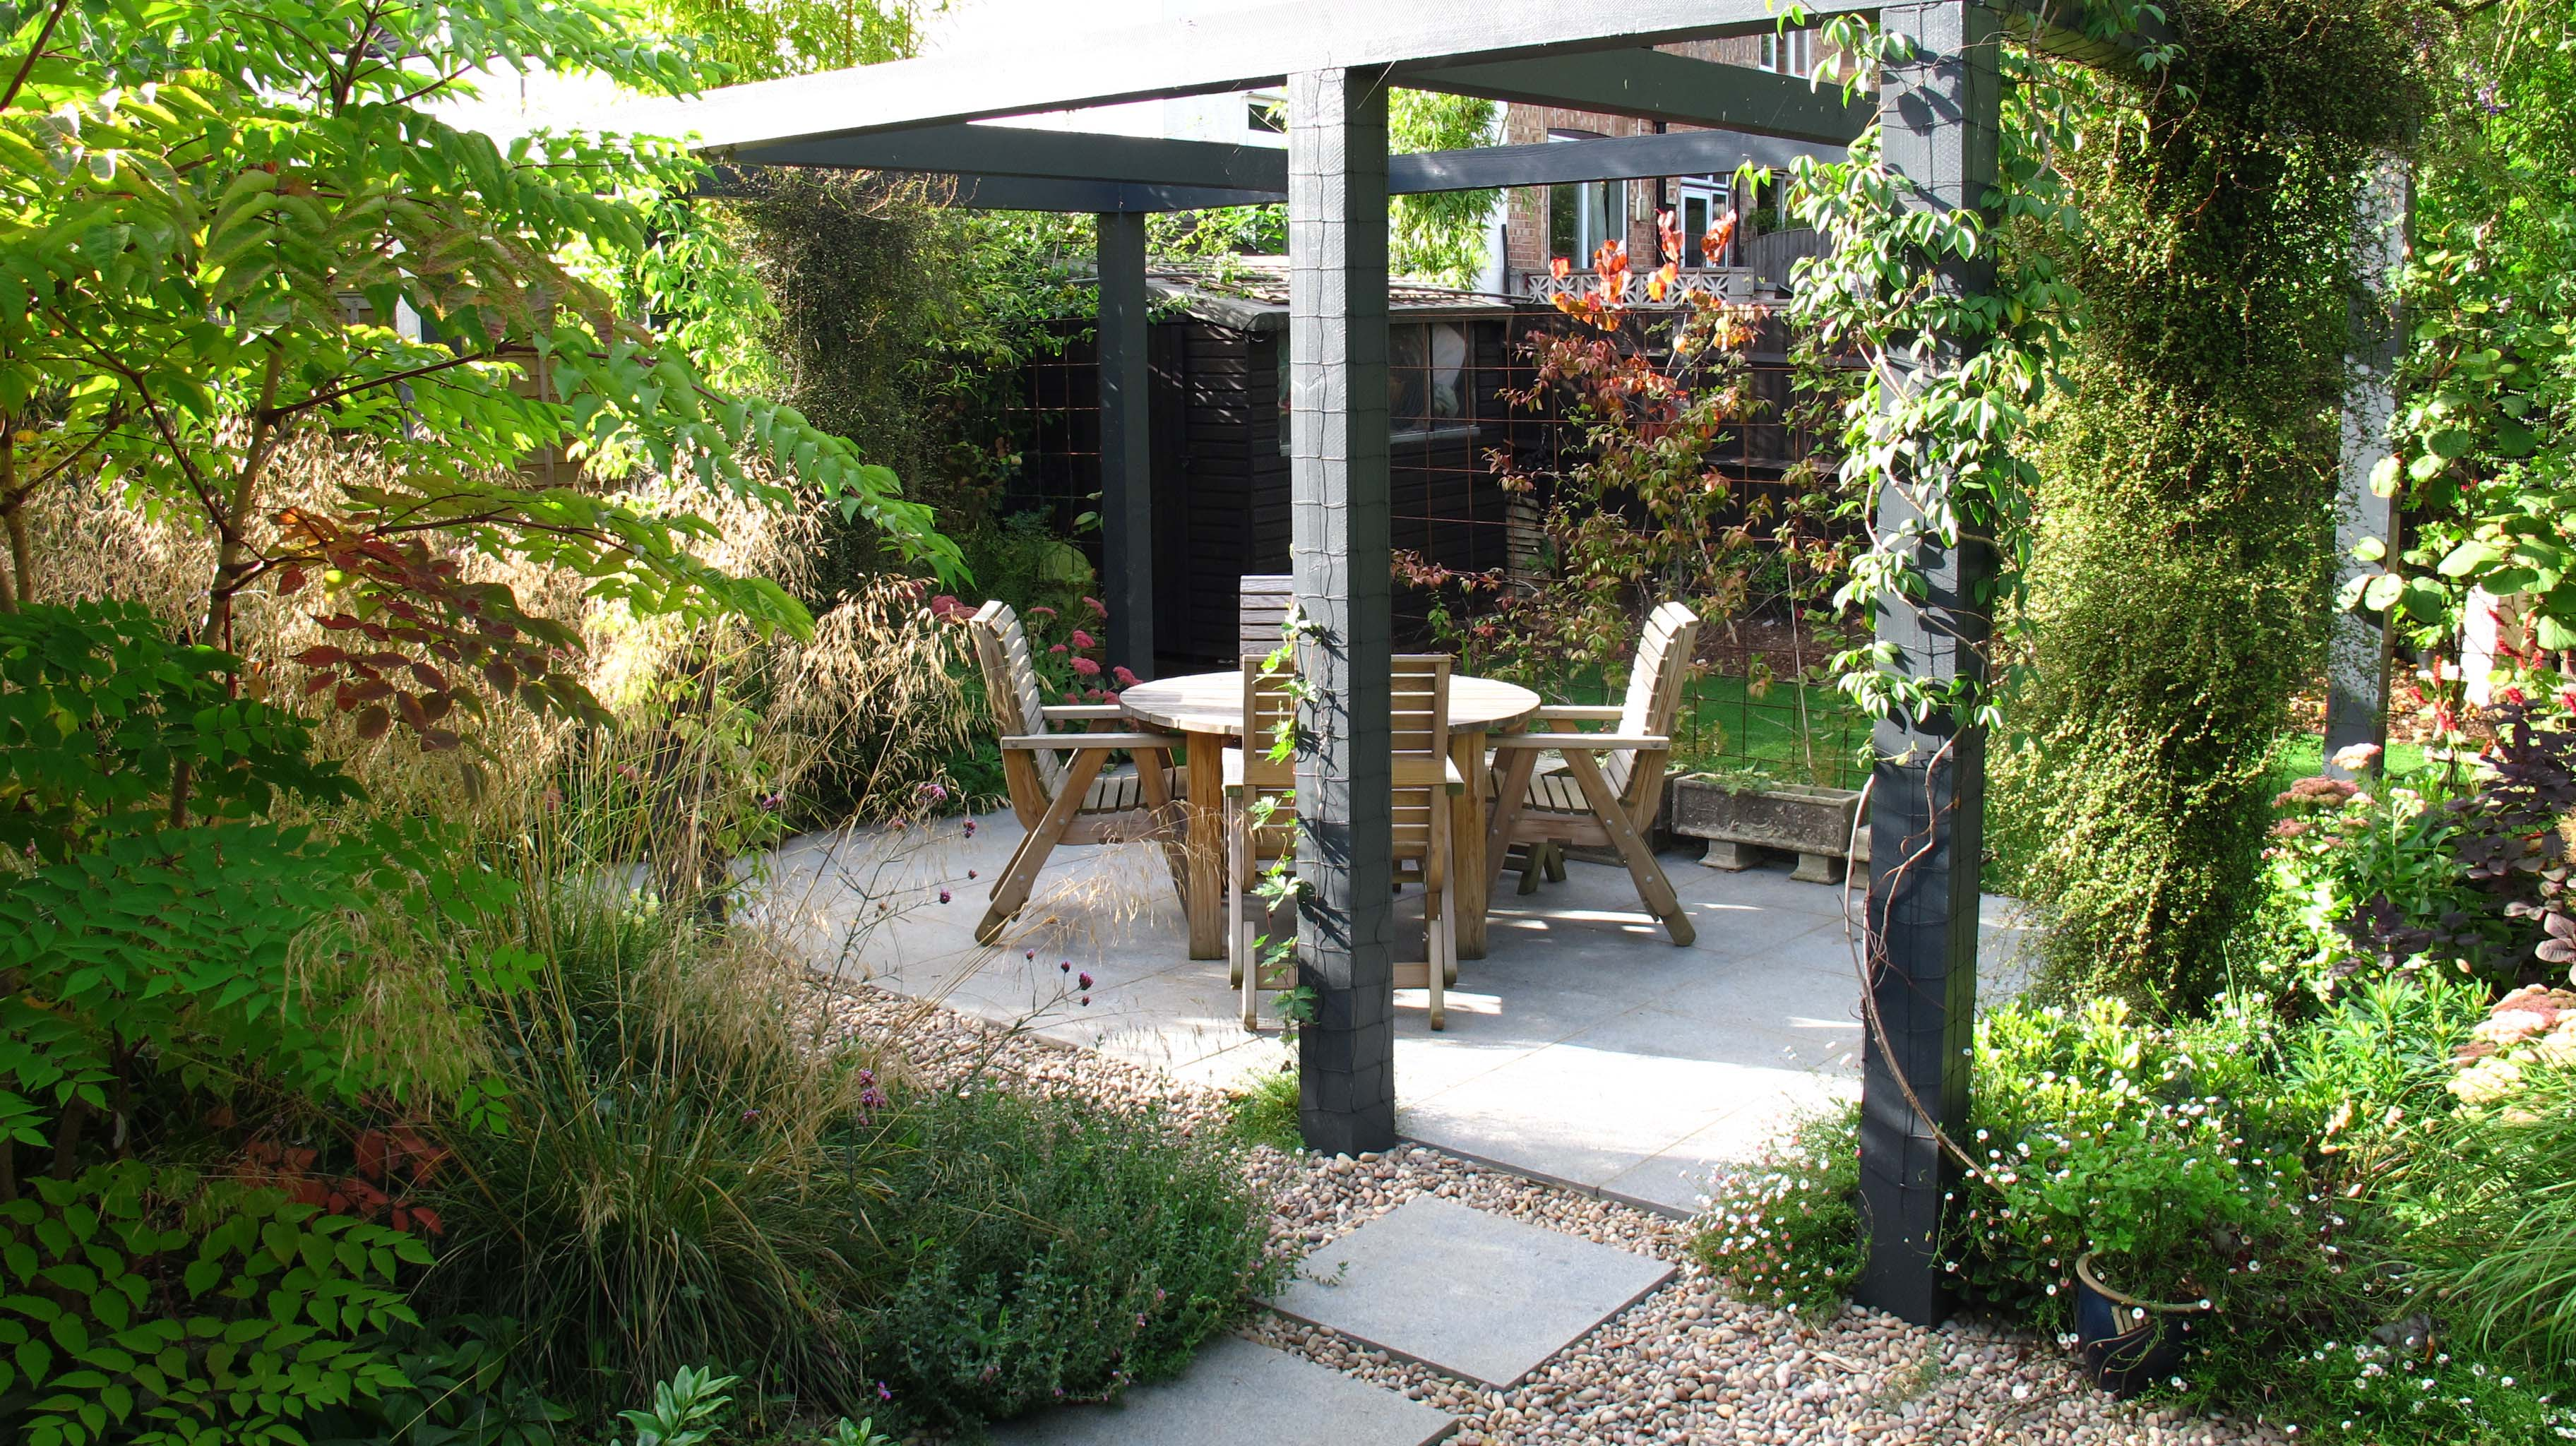 Our pergola garden has been featured in an article on for Pergola images houzz